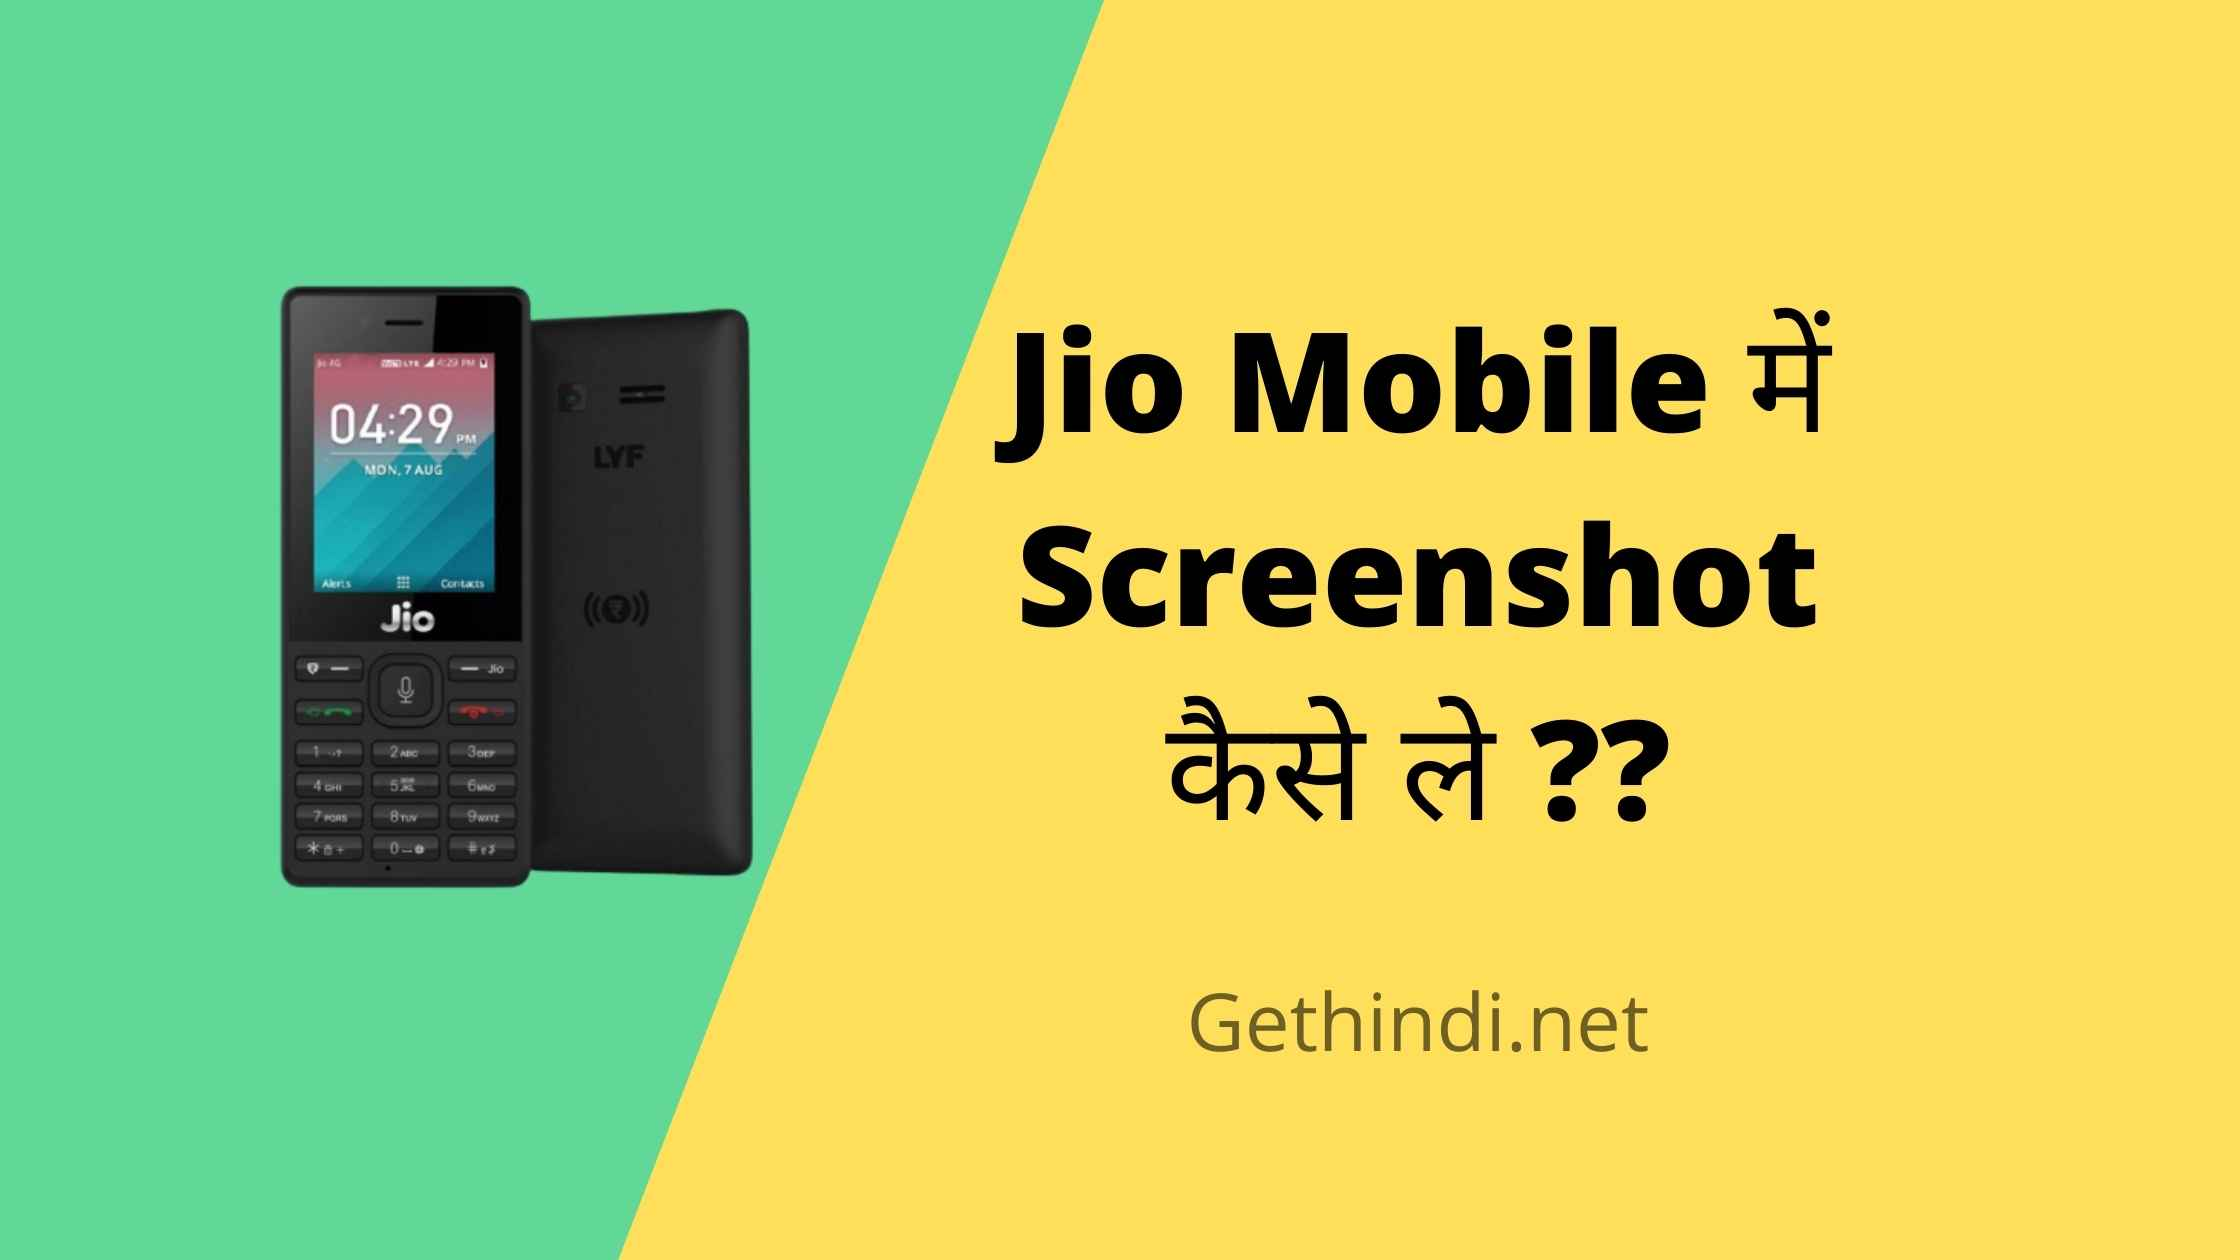 Jio Phone mein screenshot kaise le